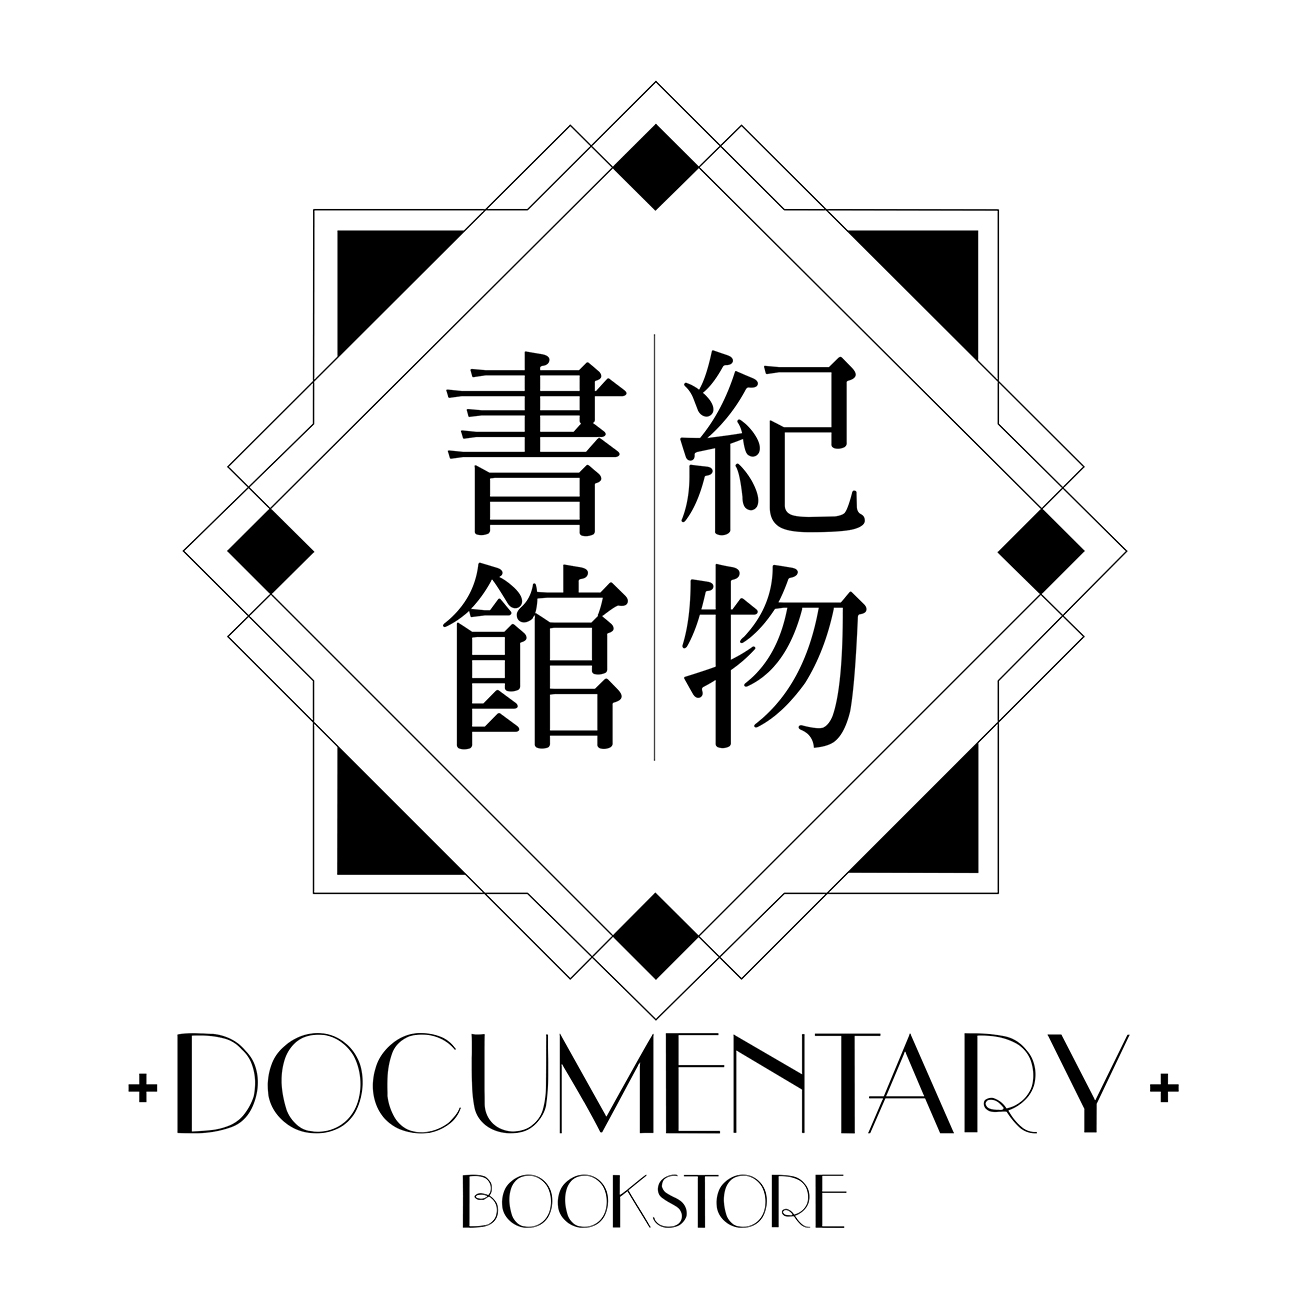 紀物書館+DOCUMENTARY+Bookstore